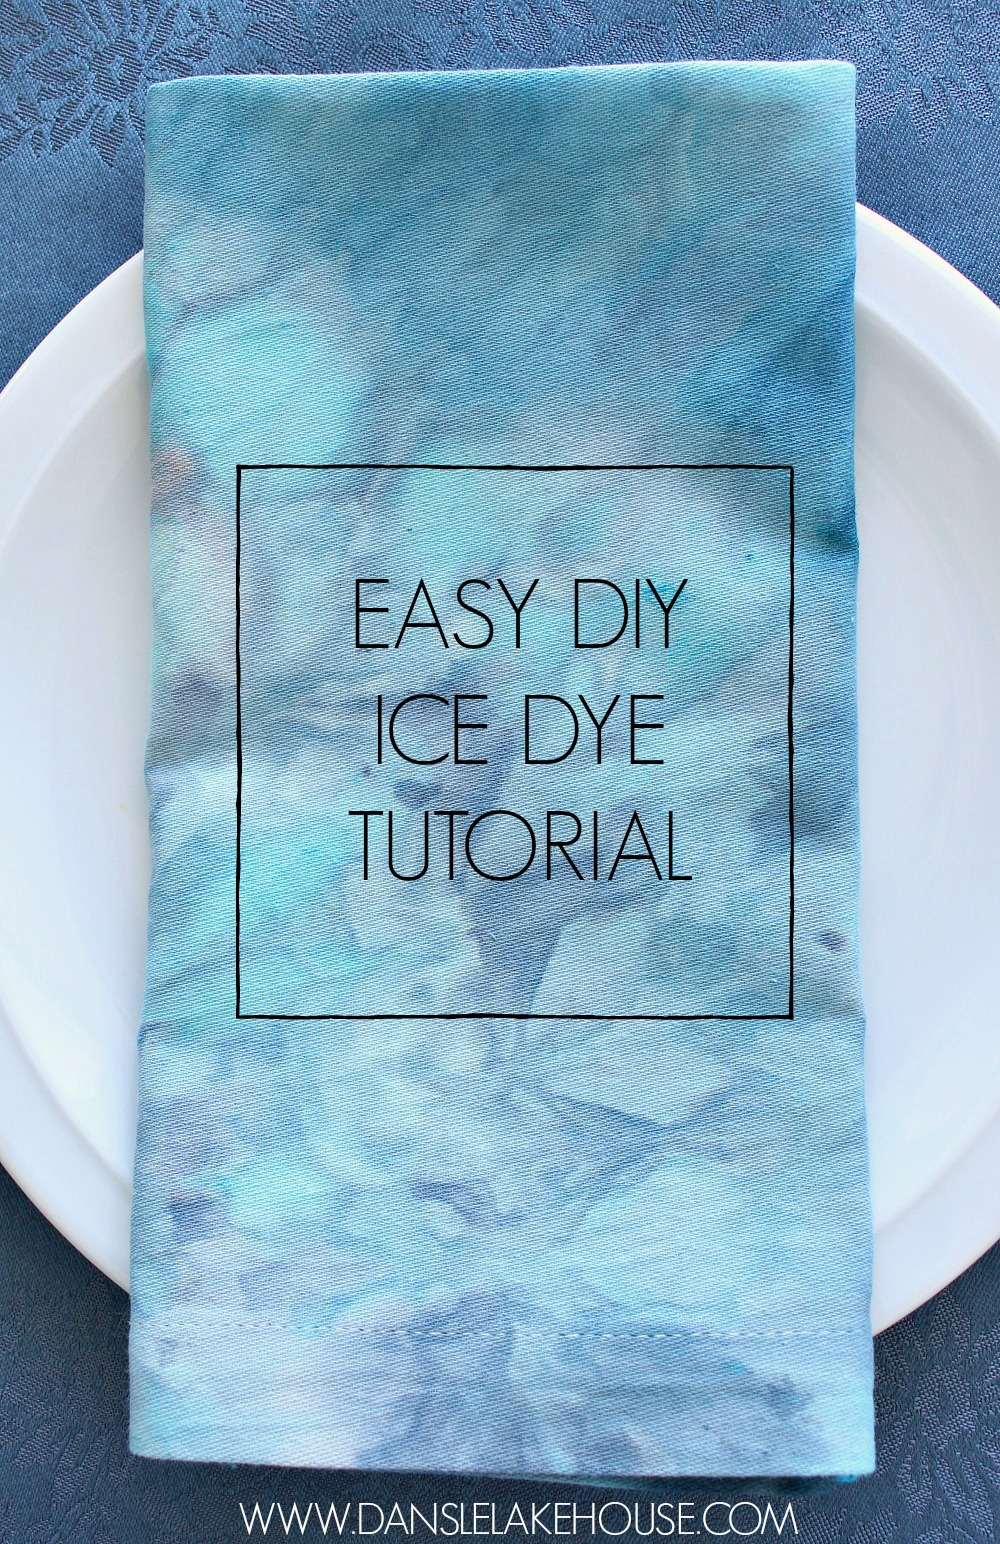 Easy DIY Ice Dyed Fabric Tutorial | Dans le Lakehouse